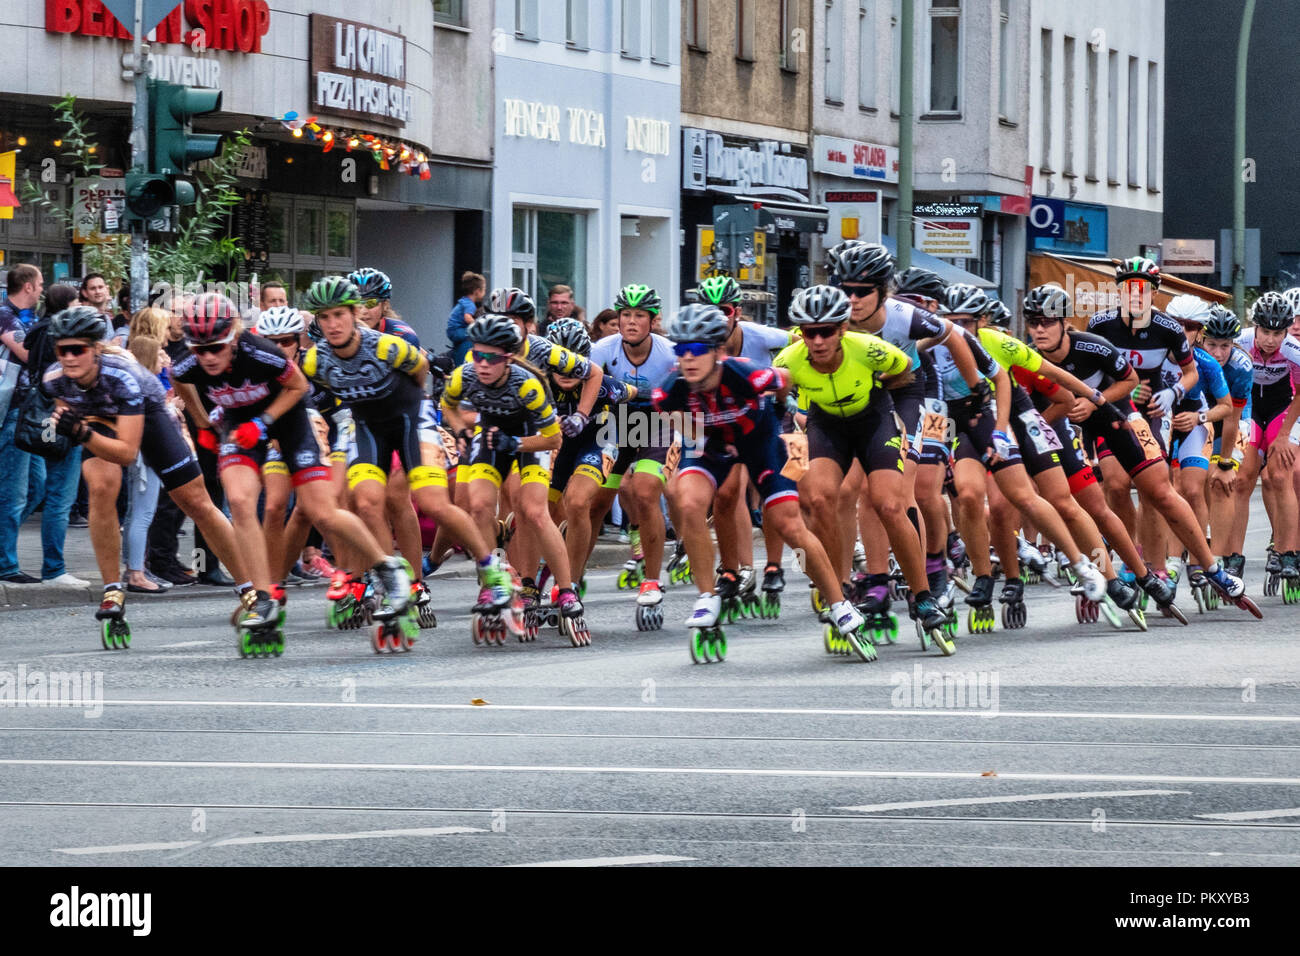 0a81dce9651636 Inline Skaters Stock Photos   Inline Skaters Stock Images - Alamy